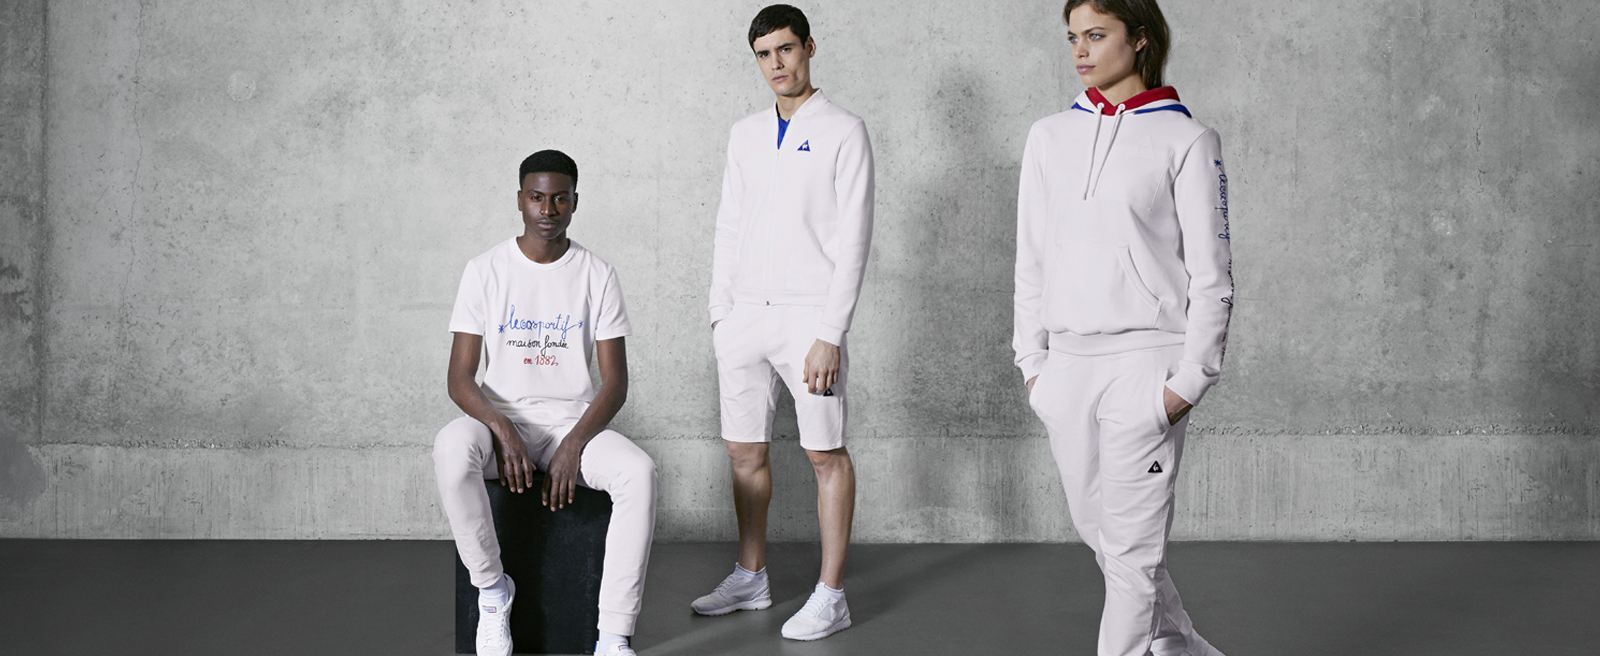 Boutique Le Coq Sportif - Honfleur Normandy Outlet